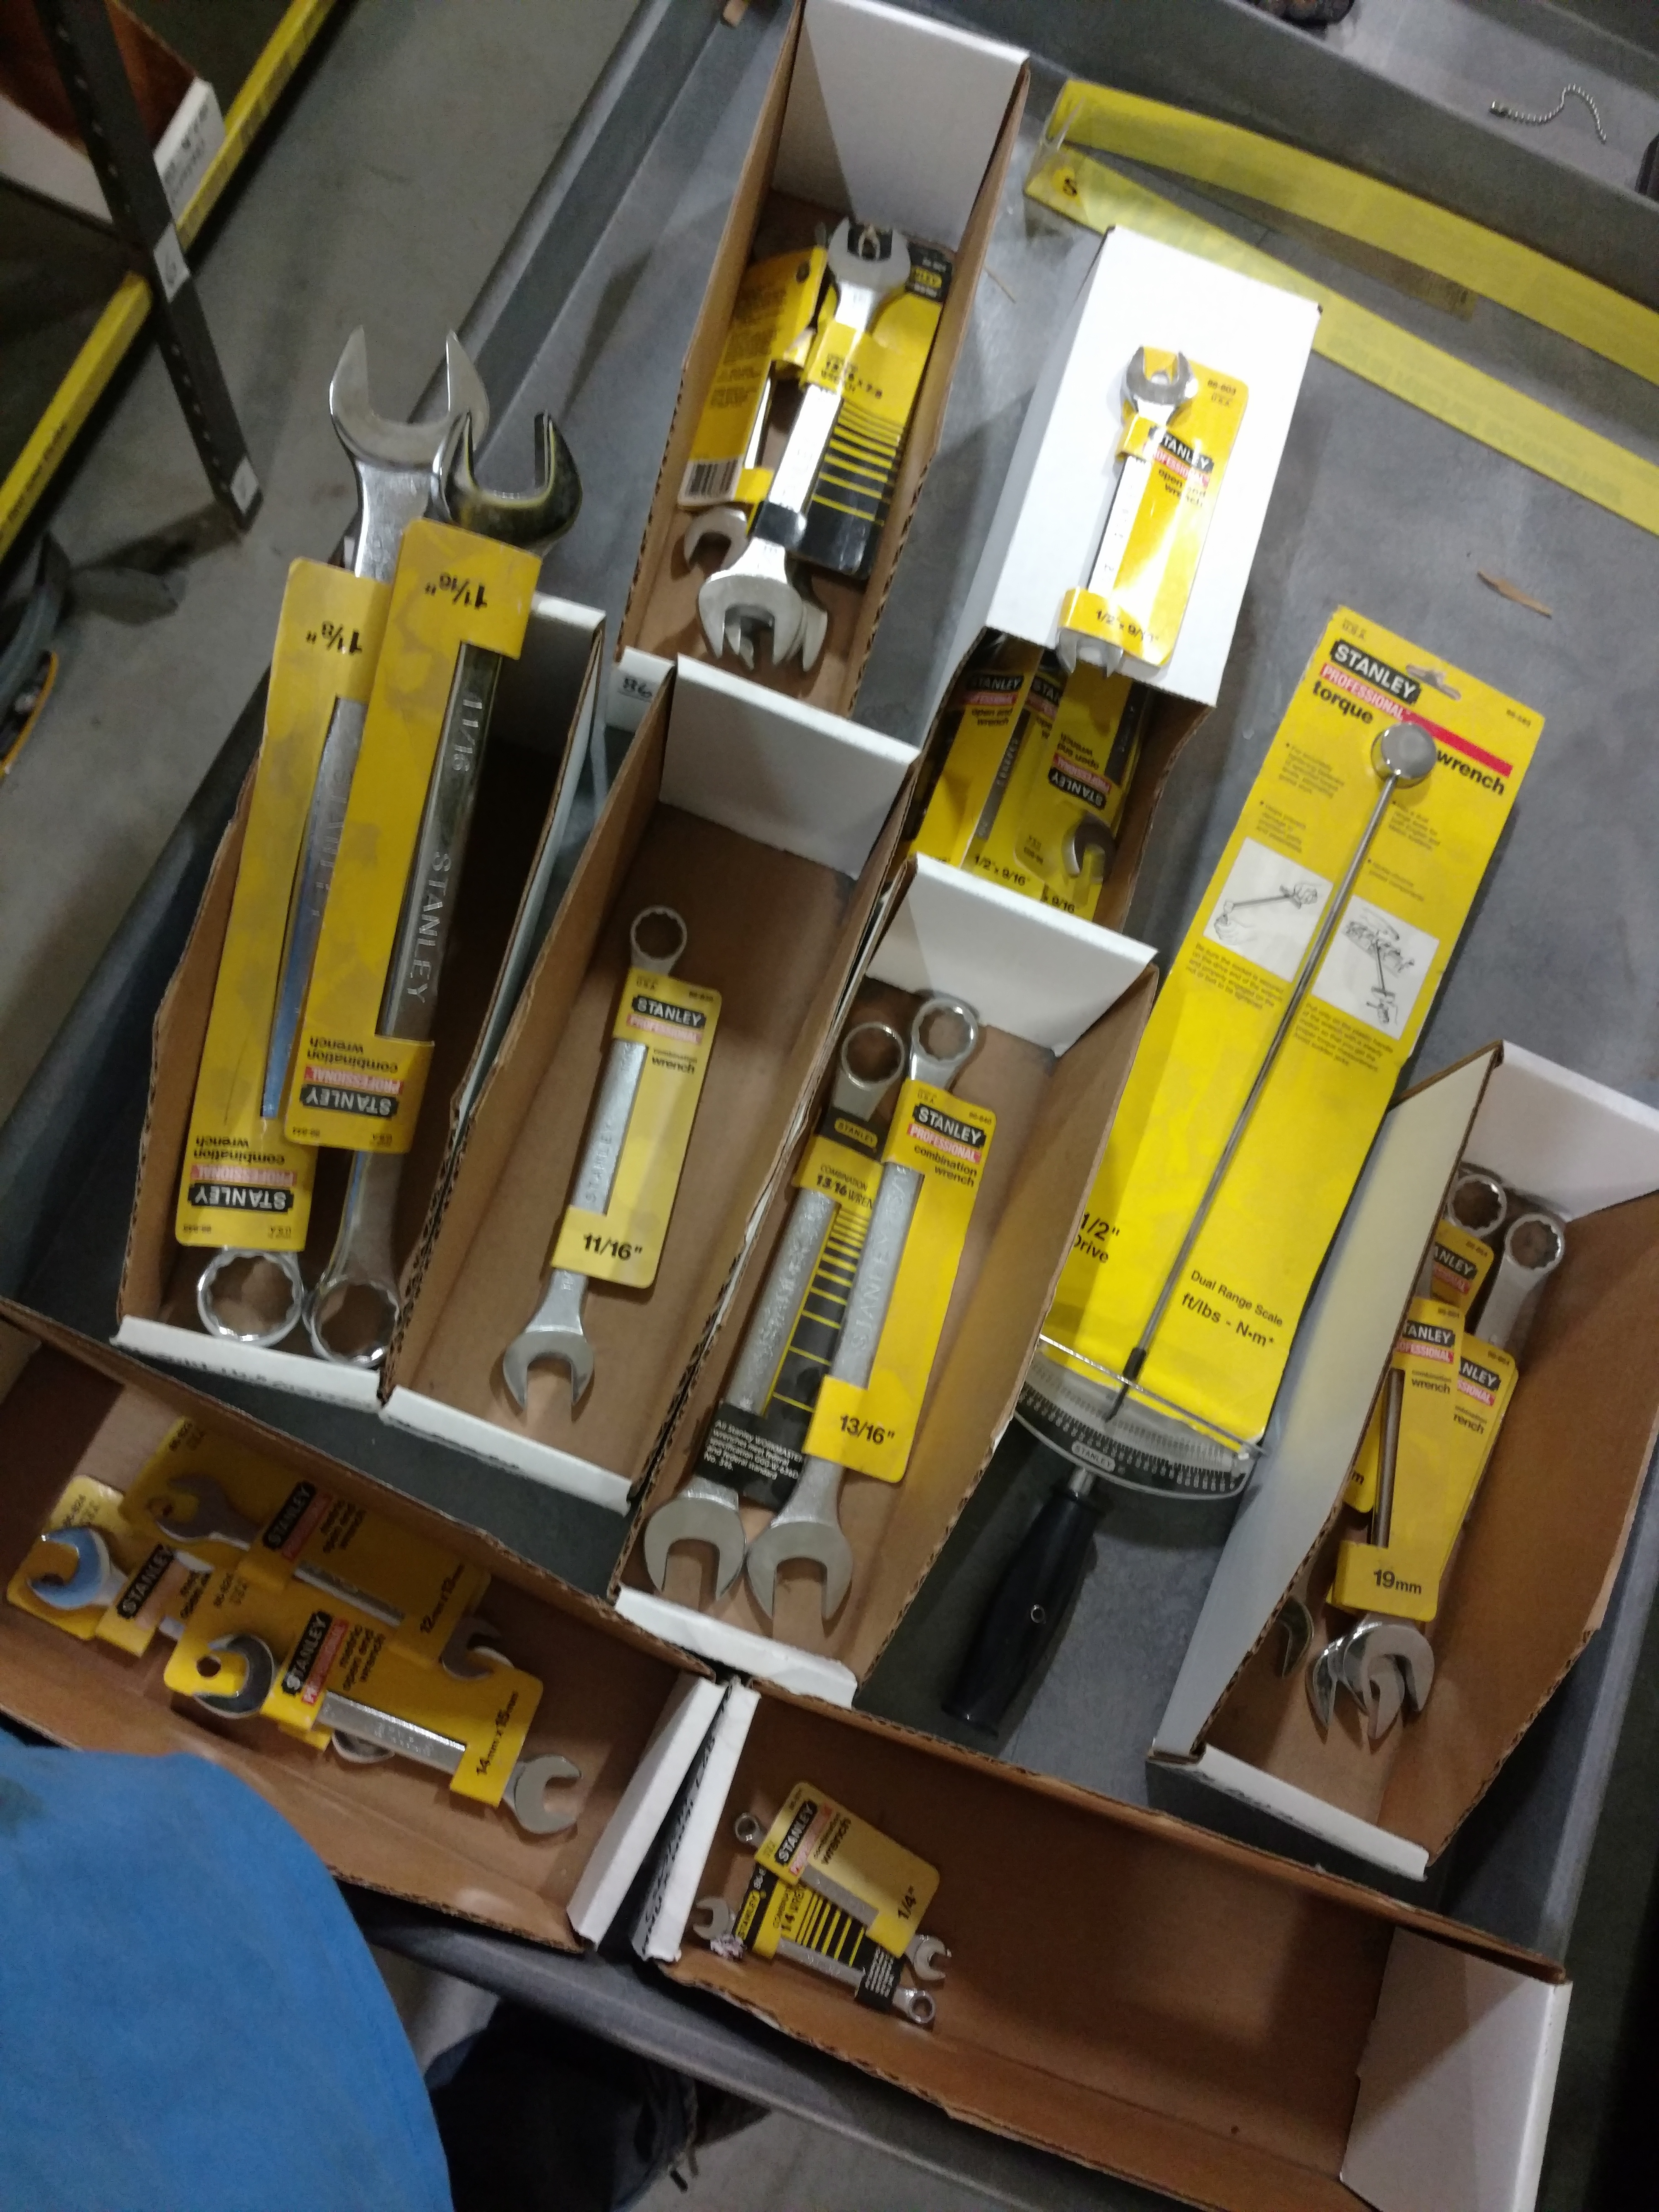 Stanley Tools Twin City Hardware Store Liquidation